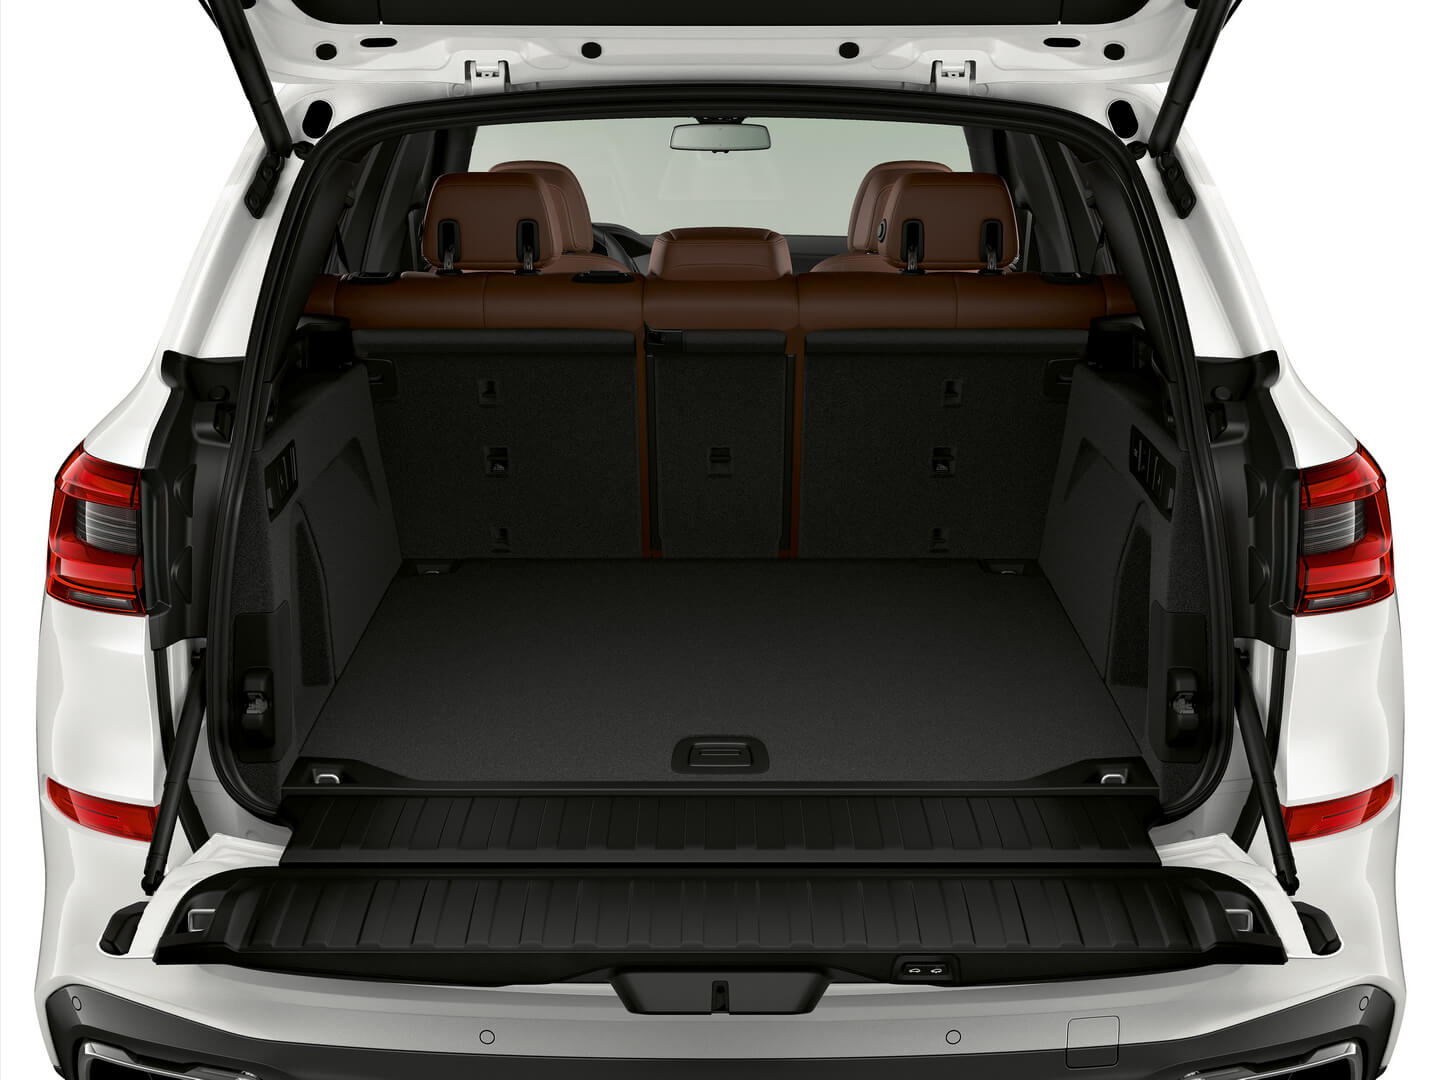 BMW X5 XDrive45e-interior-3